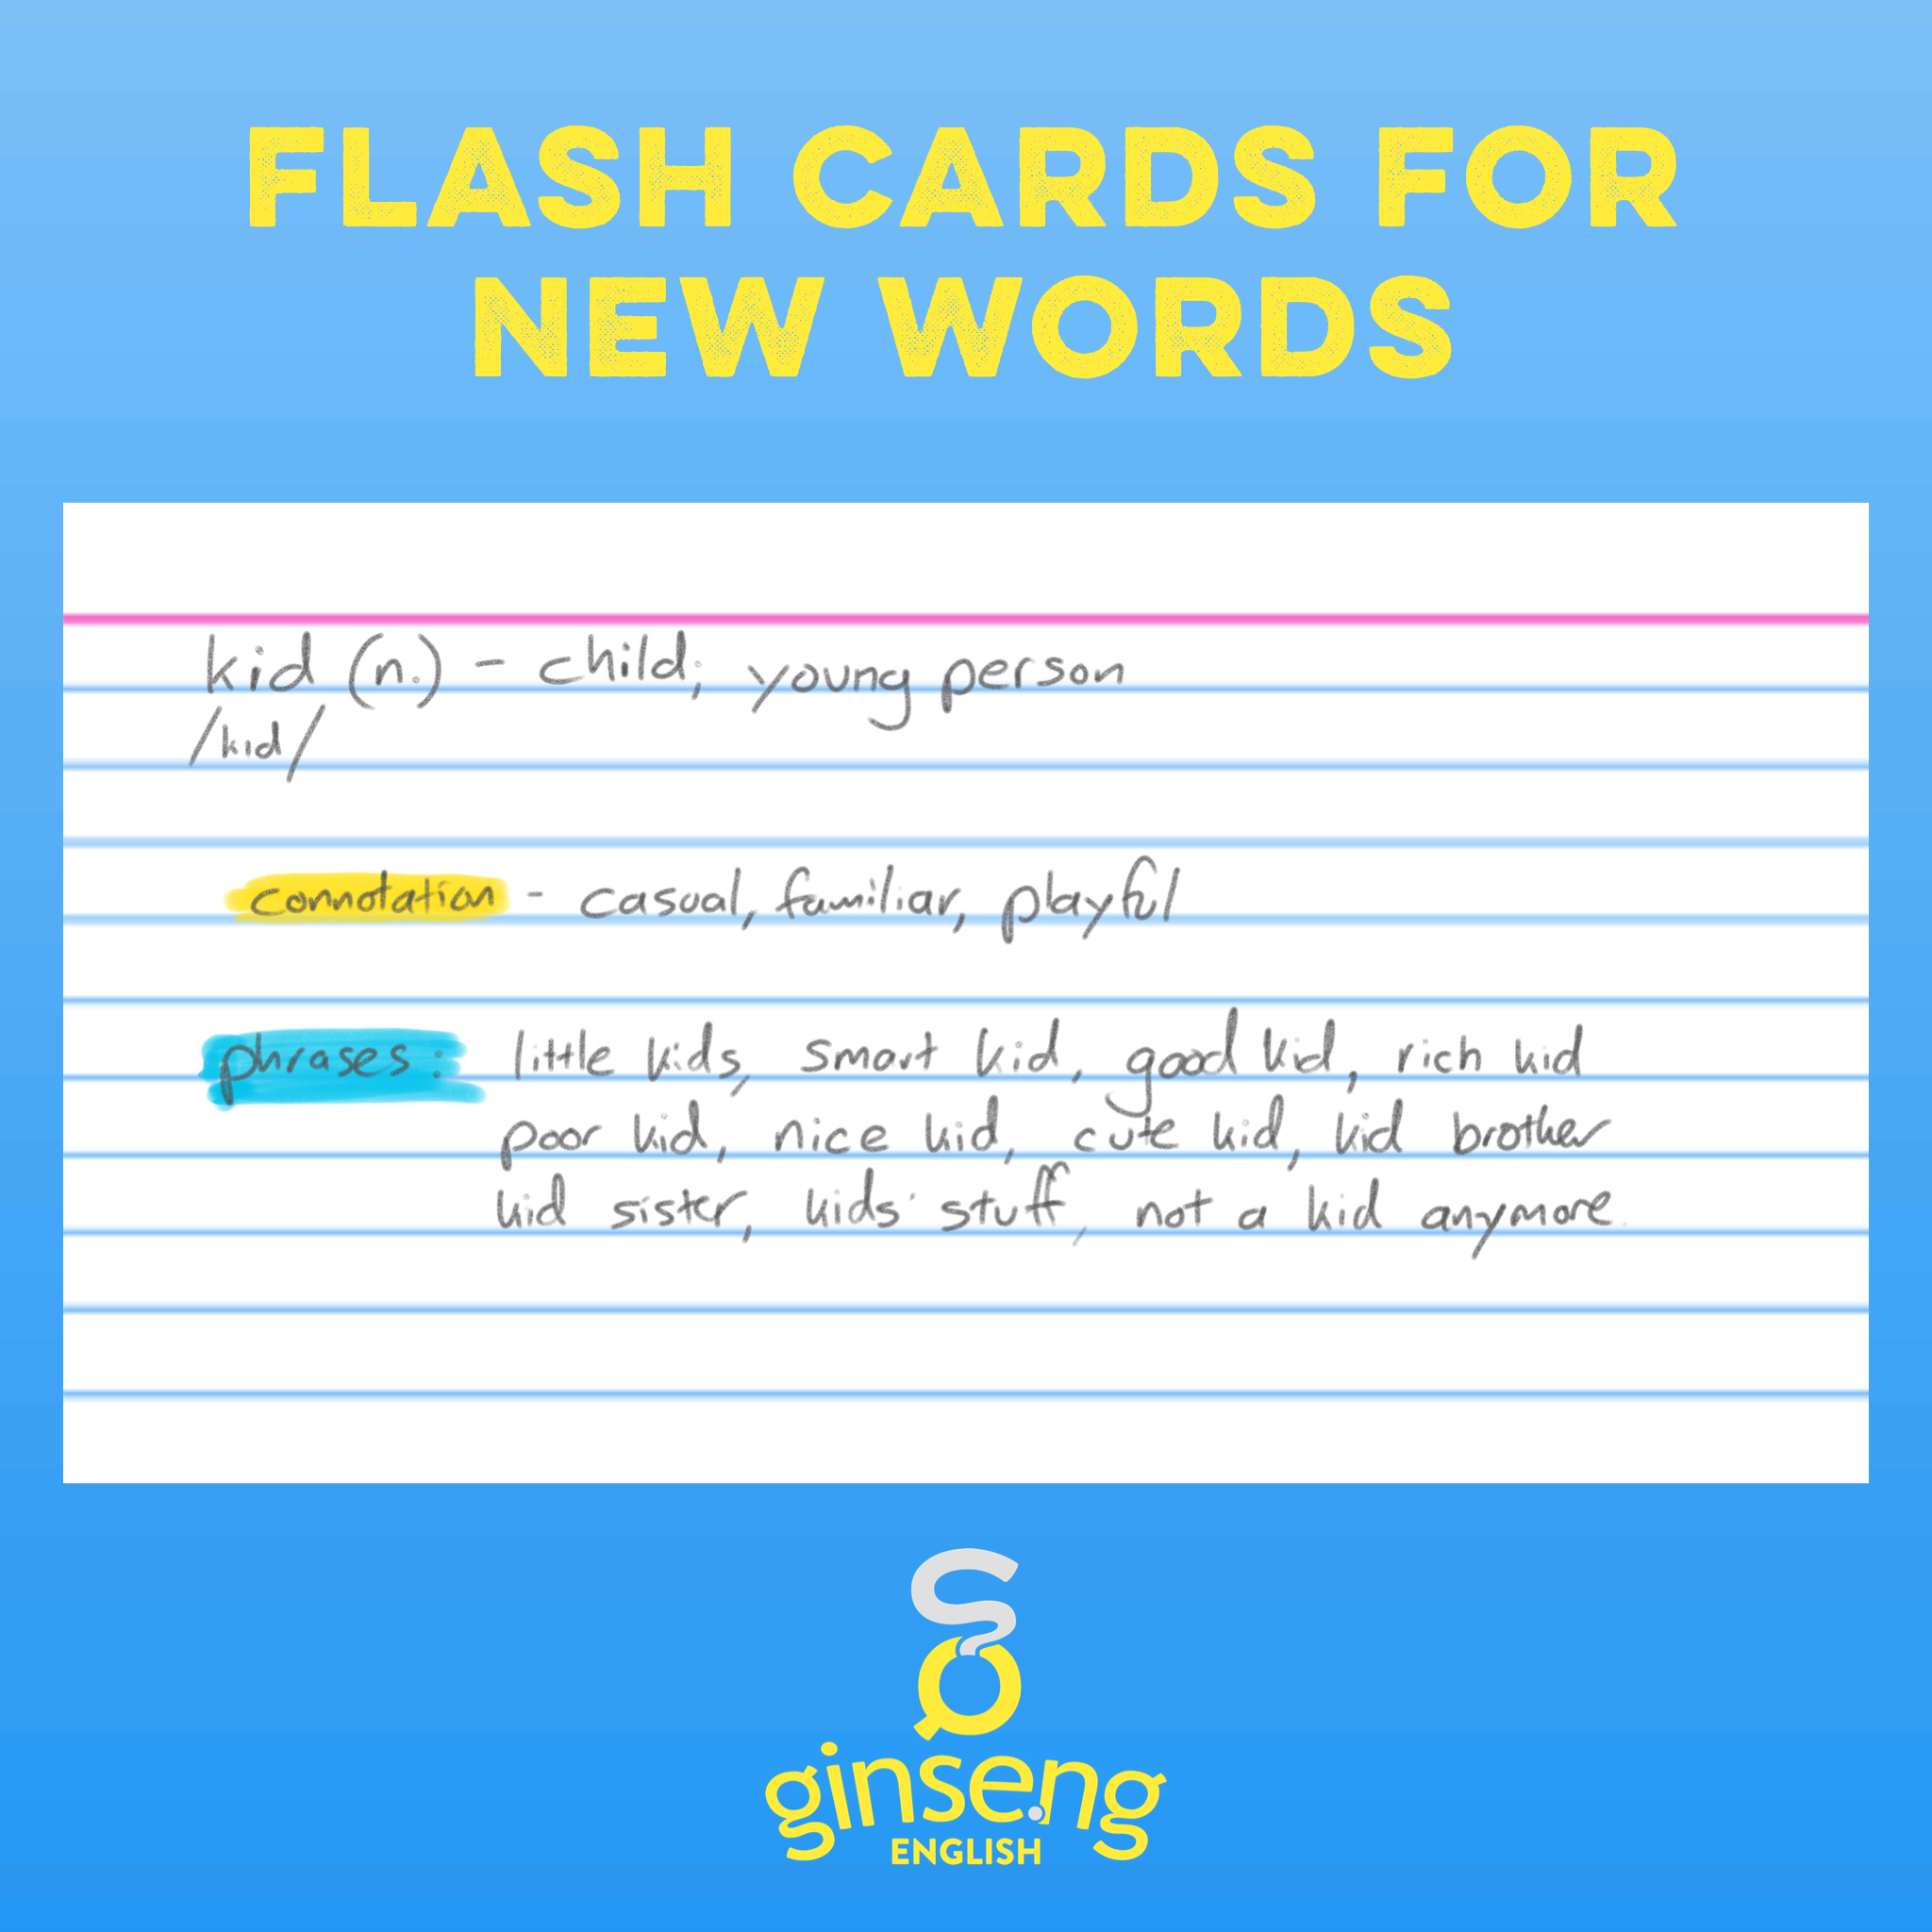 Include information about connotation and collocation when taking notes on new words.